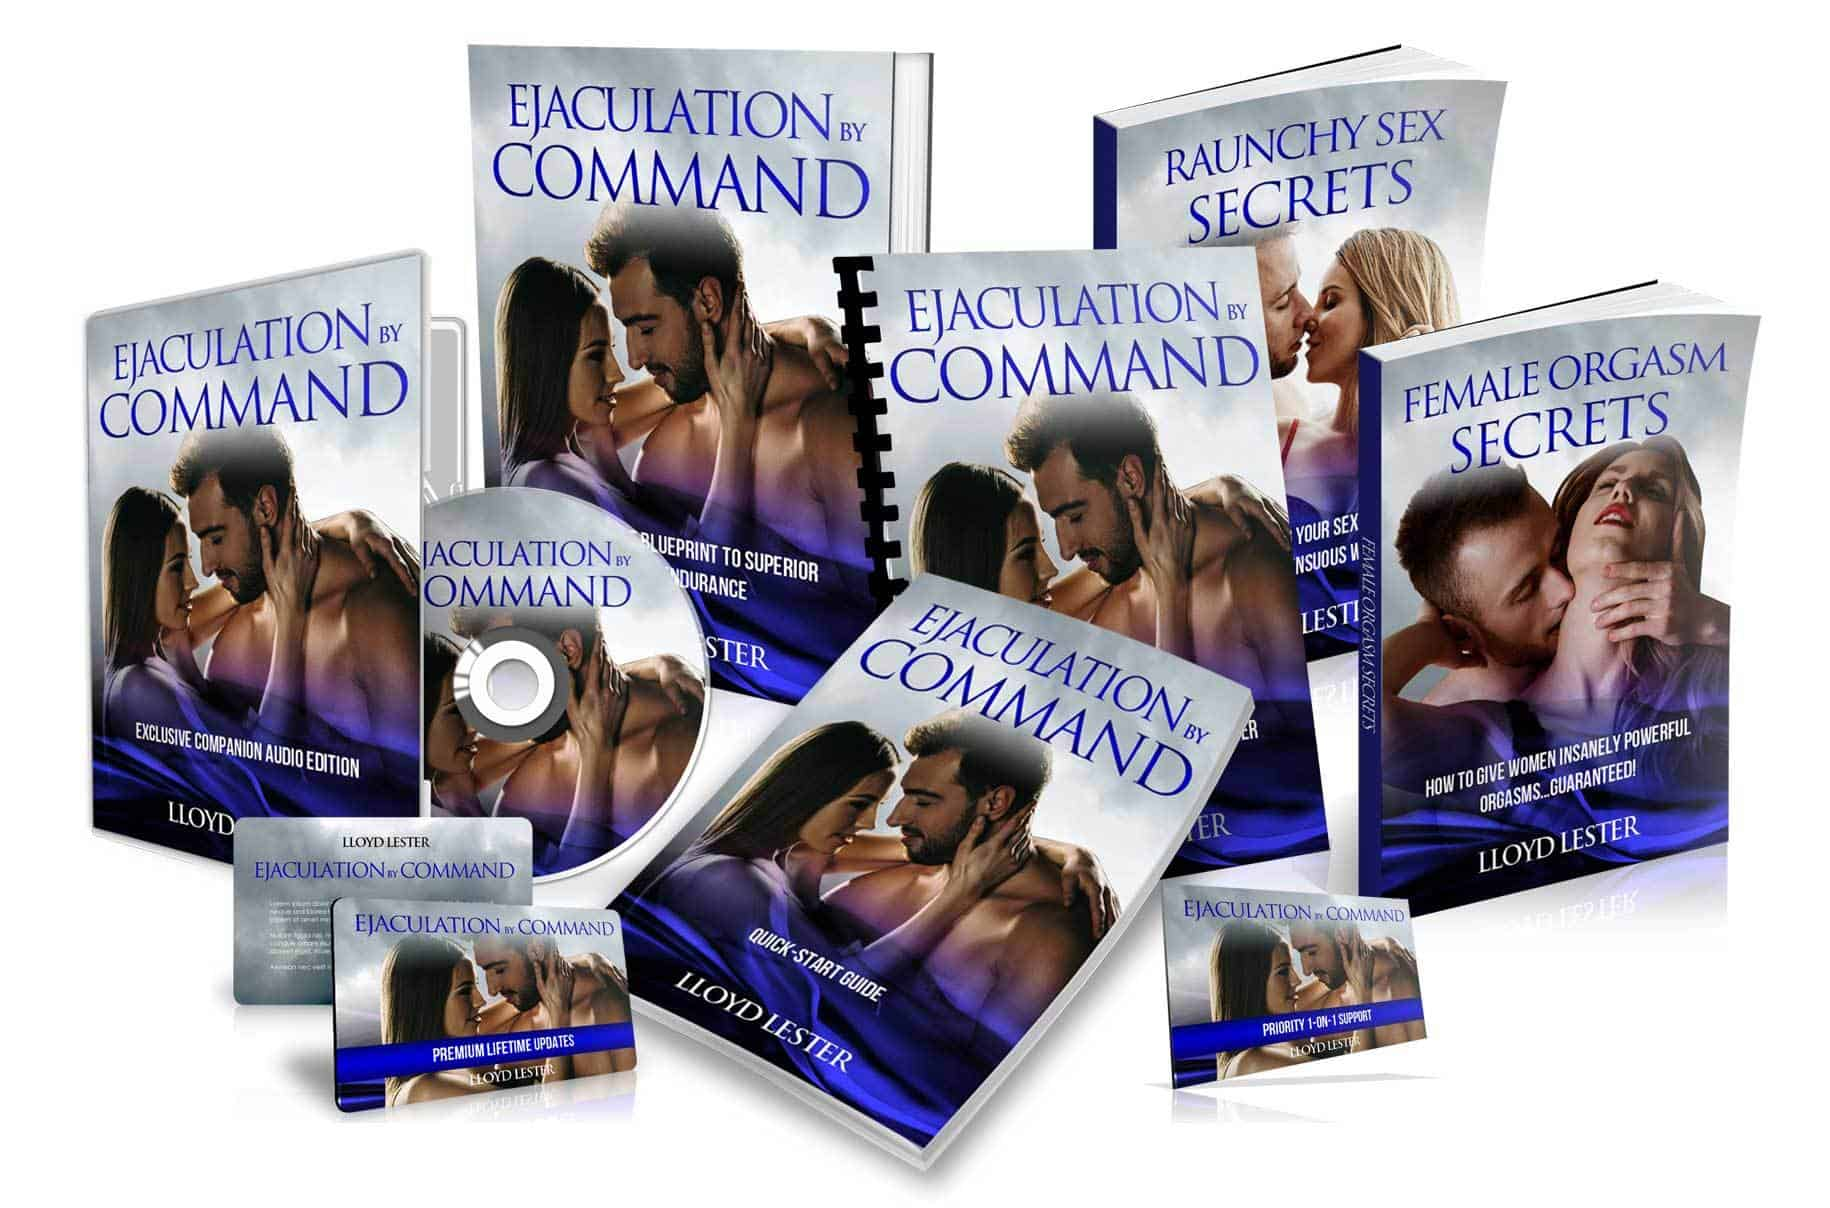 Lloyd Lesters Ejaculation By Command Review